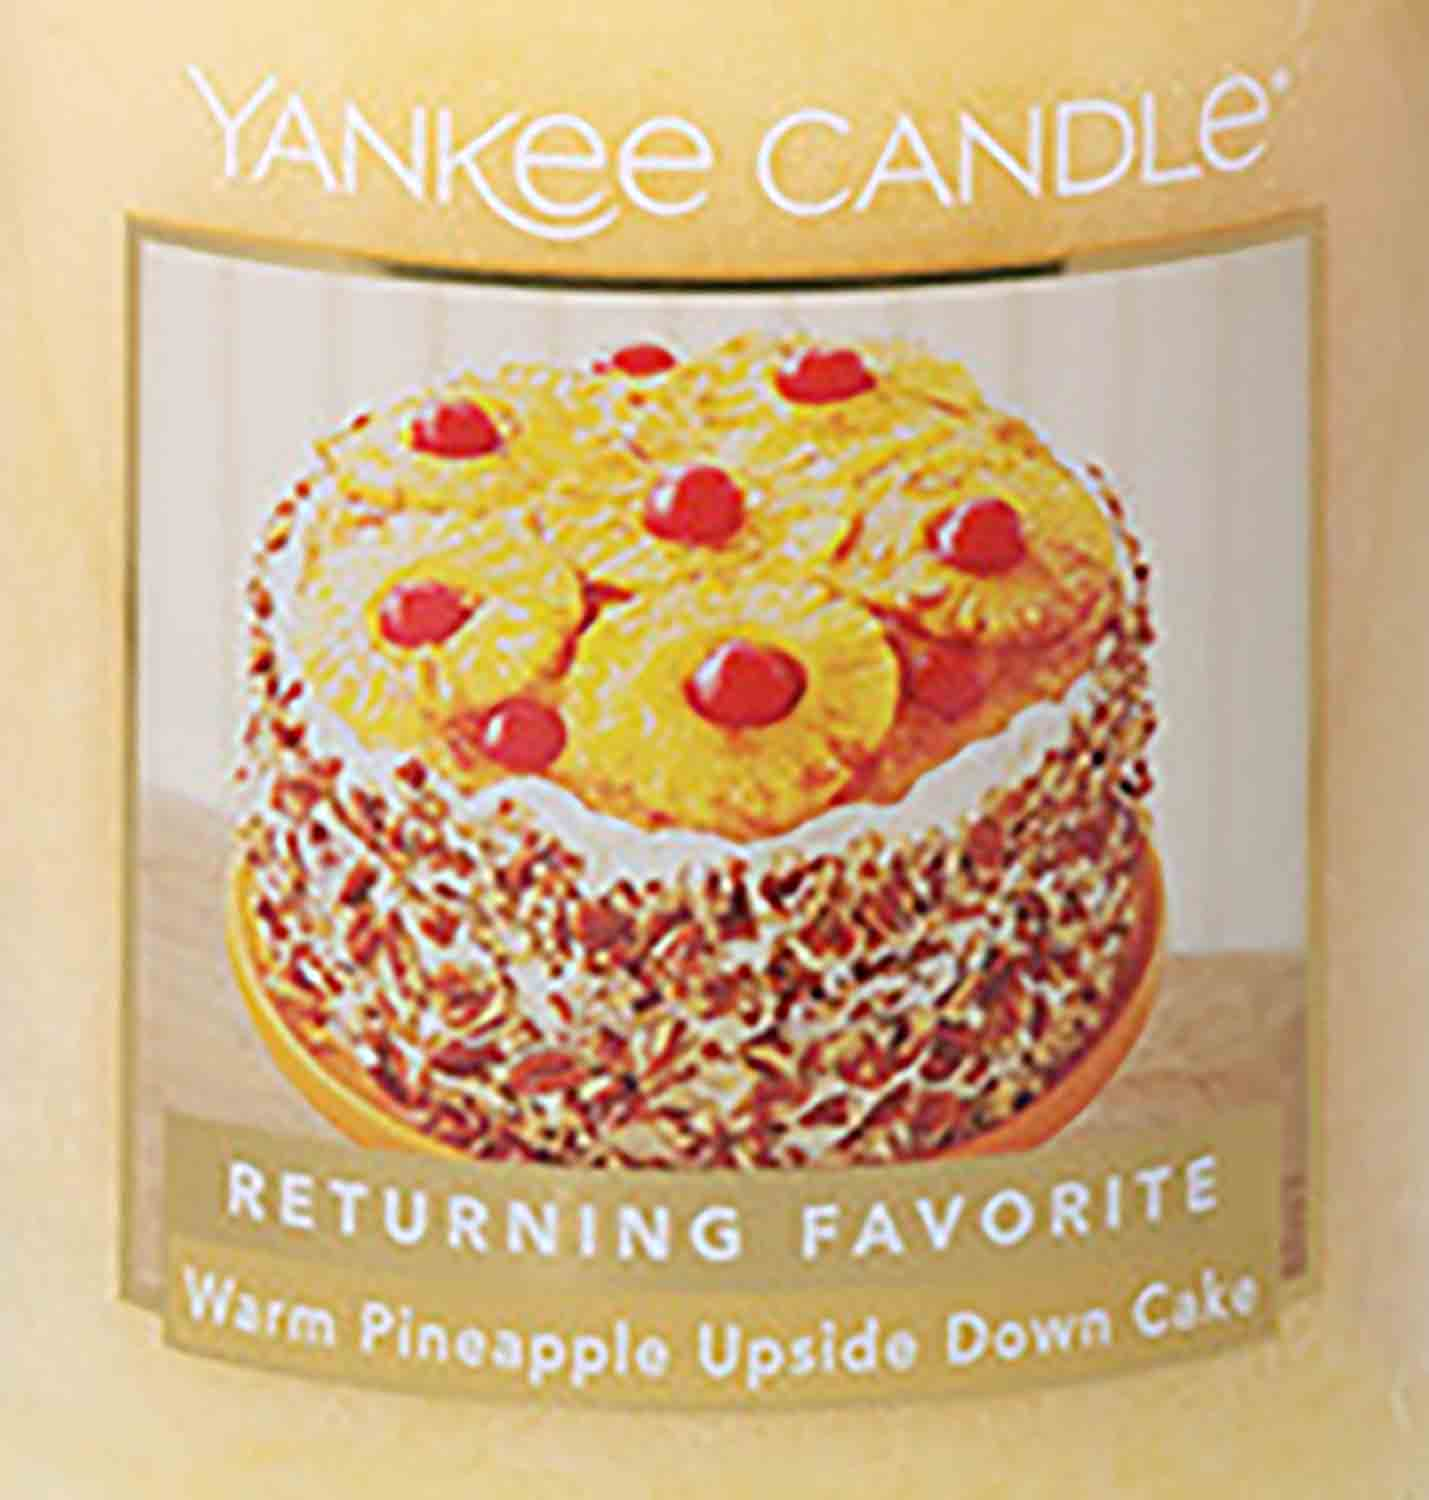 Crumble vosk Yankee Candle Warm Pineapple Upside Down Cake USA 22 g